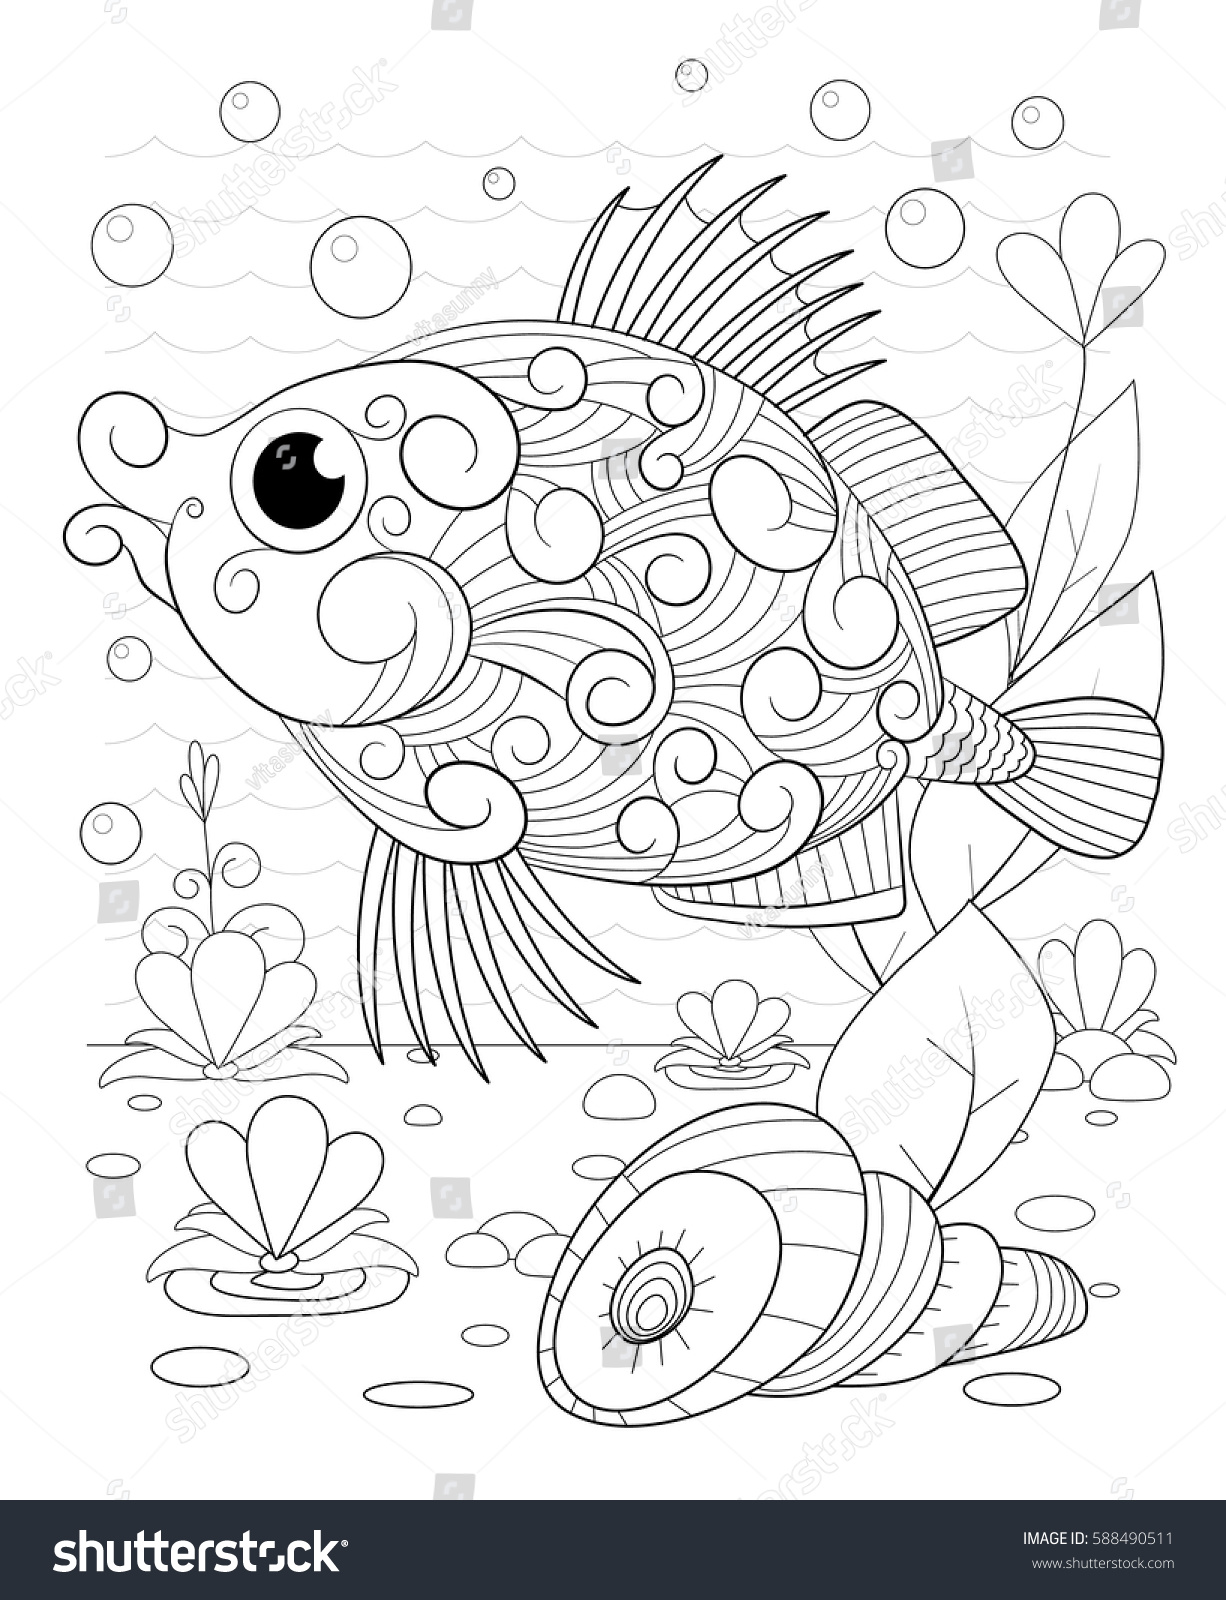 coloring pages of seaweed - hand drawn decorative fish waves seaweed stock vector